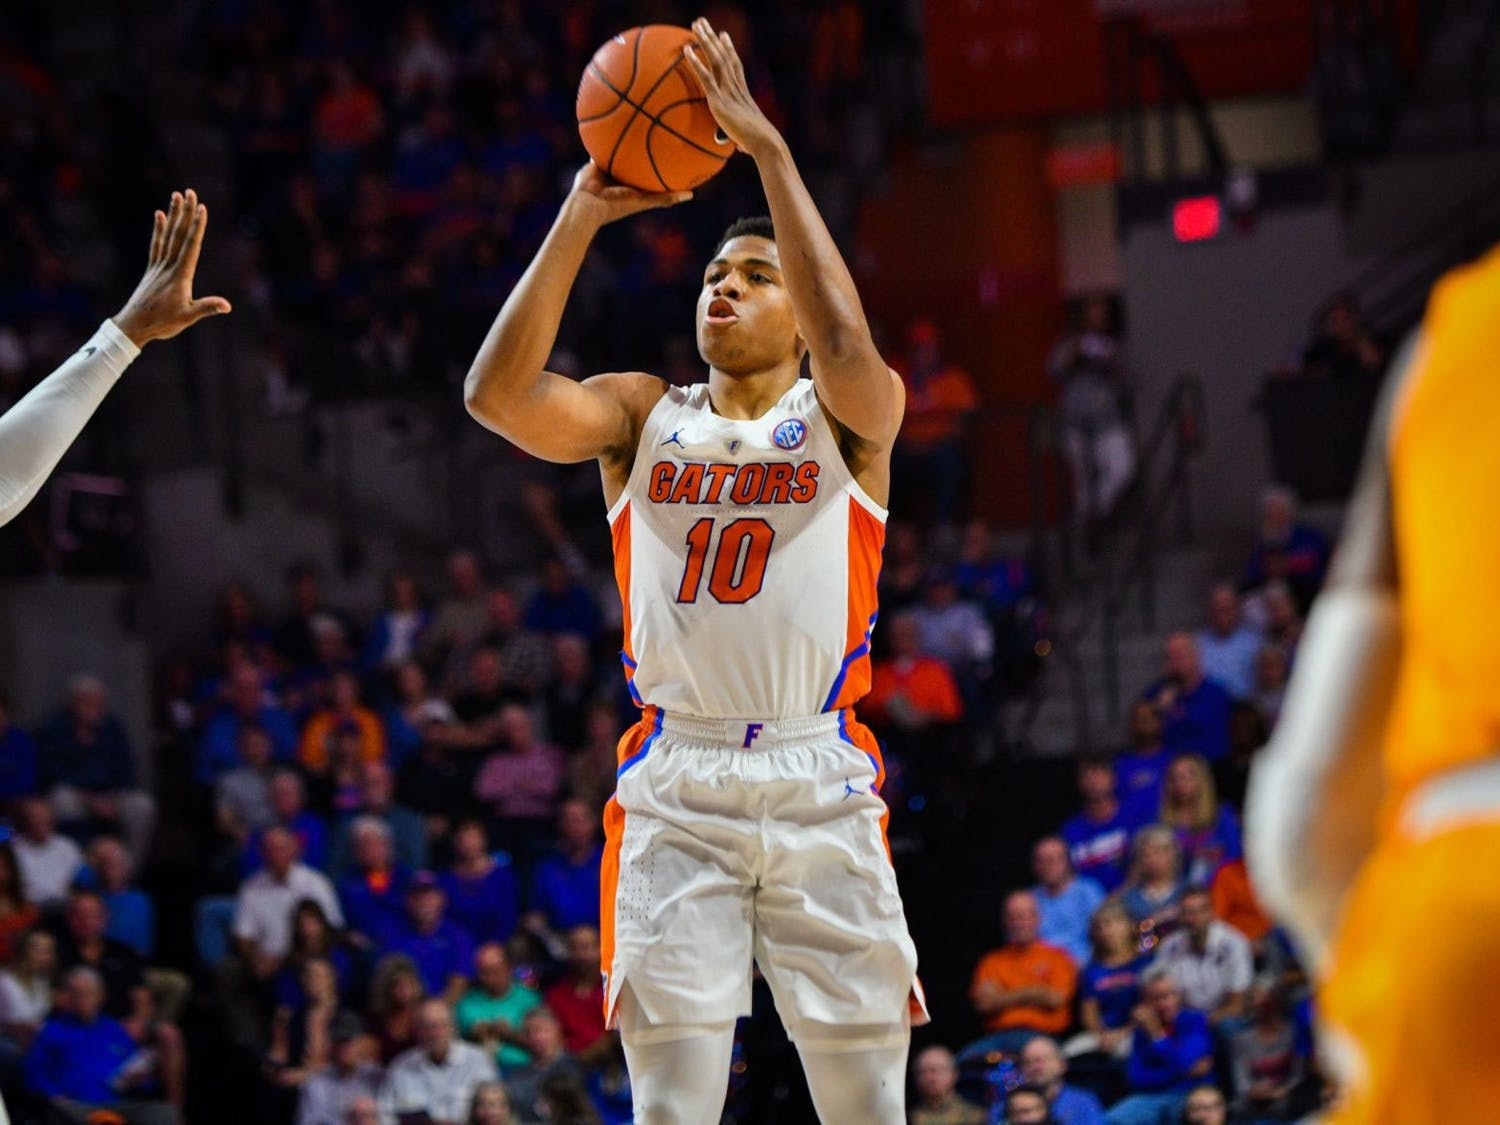 Guard Noah Locke finished with a game-high 17 points on 6-of-10 shooting, including a 5-of-8 clip from beyond the arc in the Gators' 73-61 loss to Tennessee.